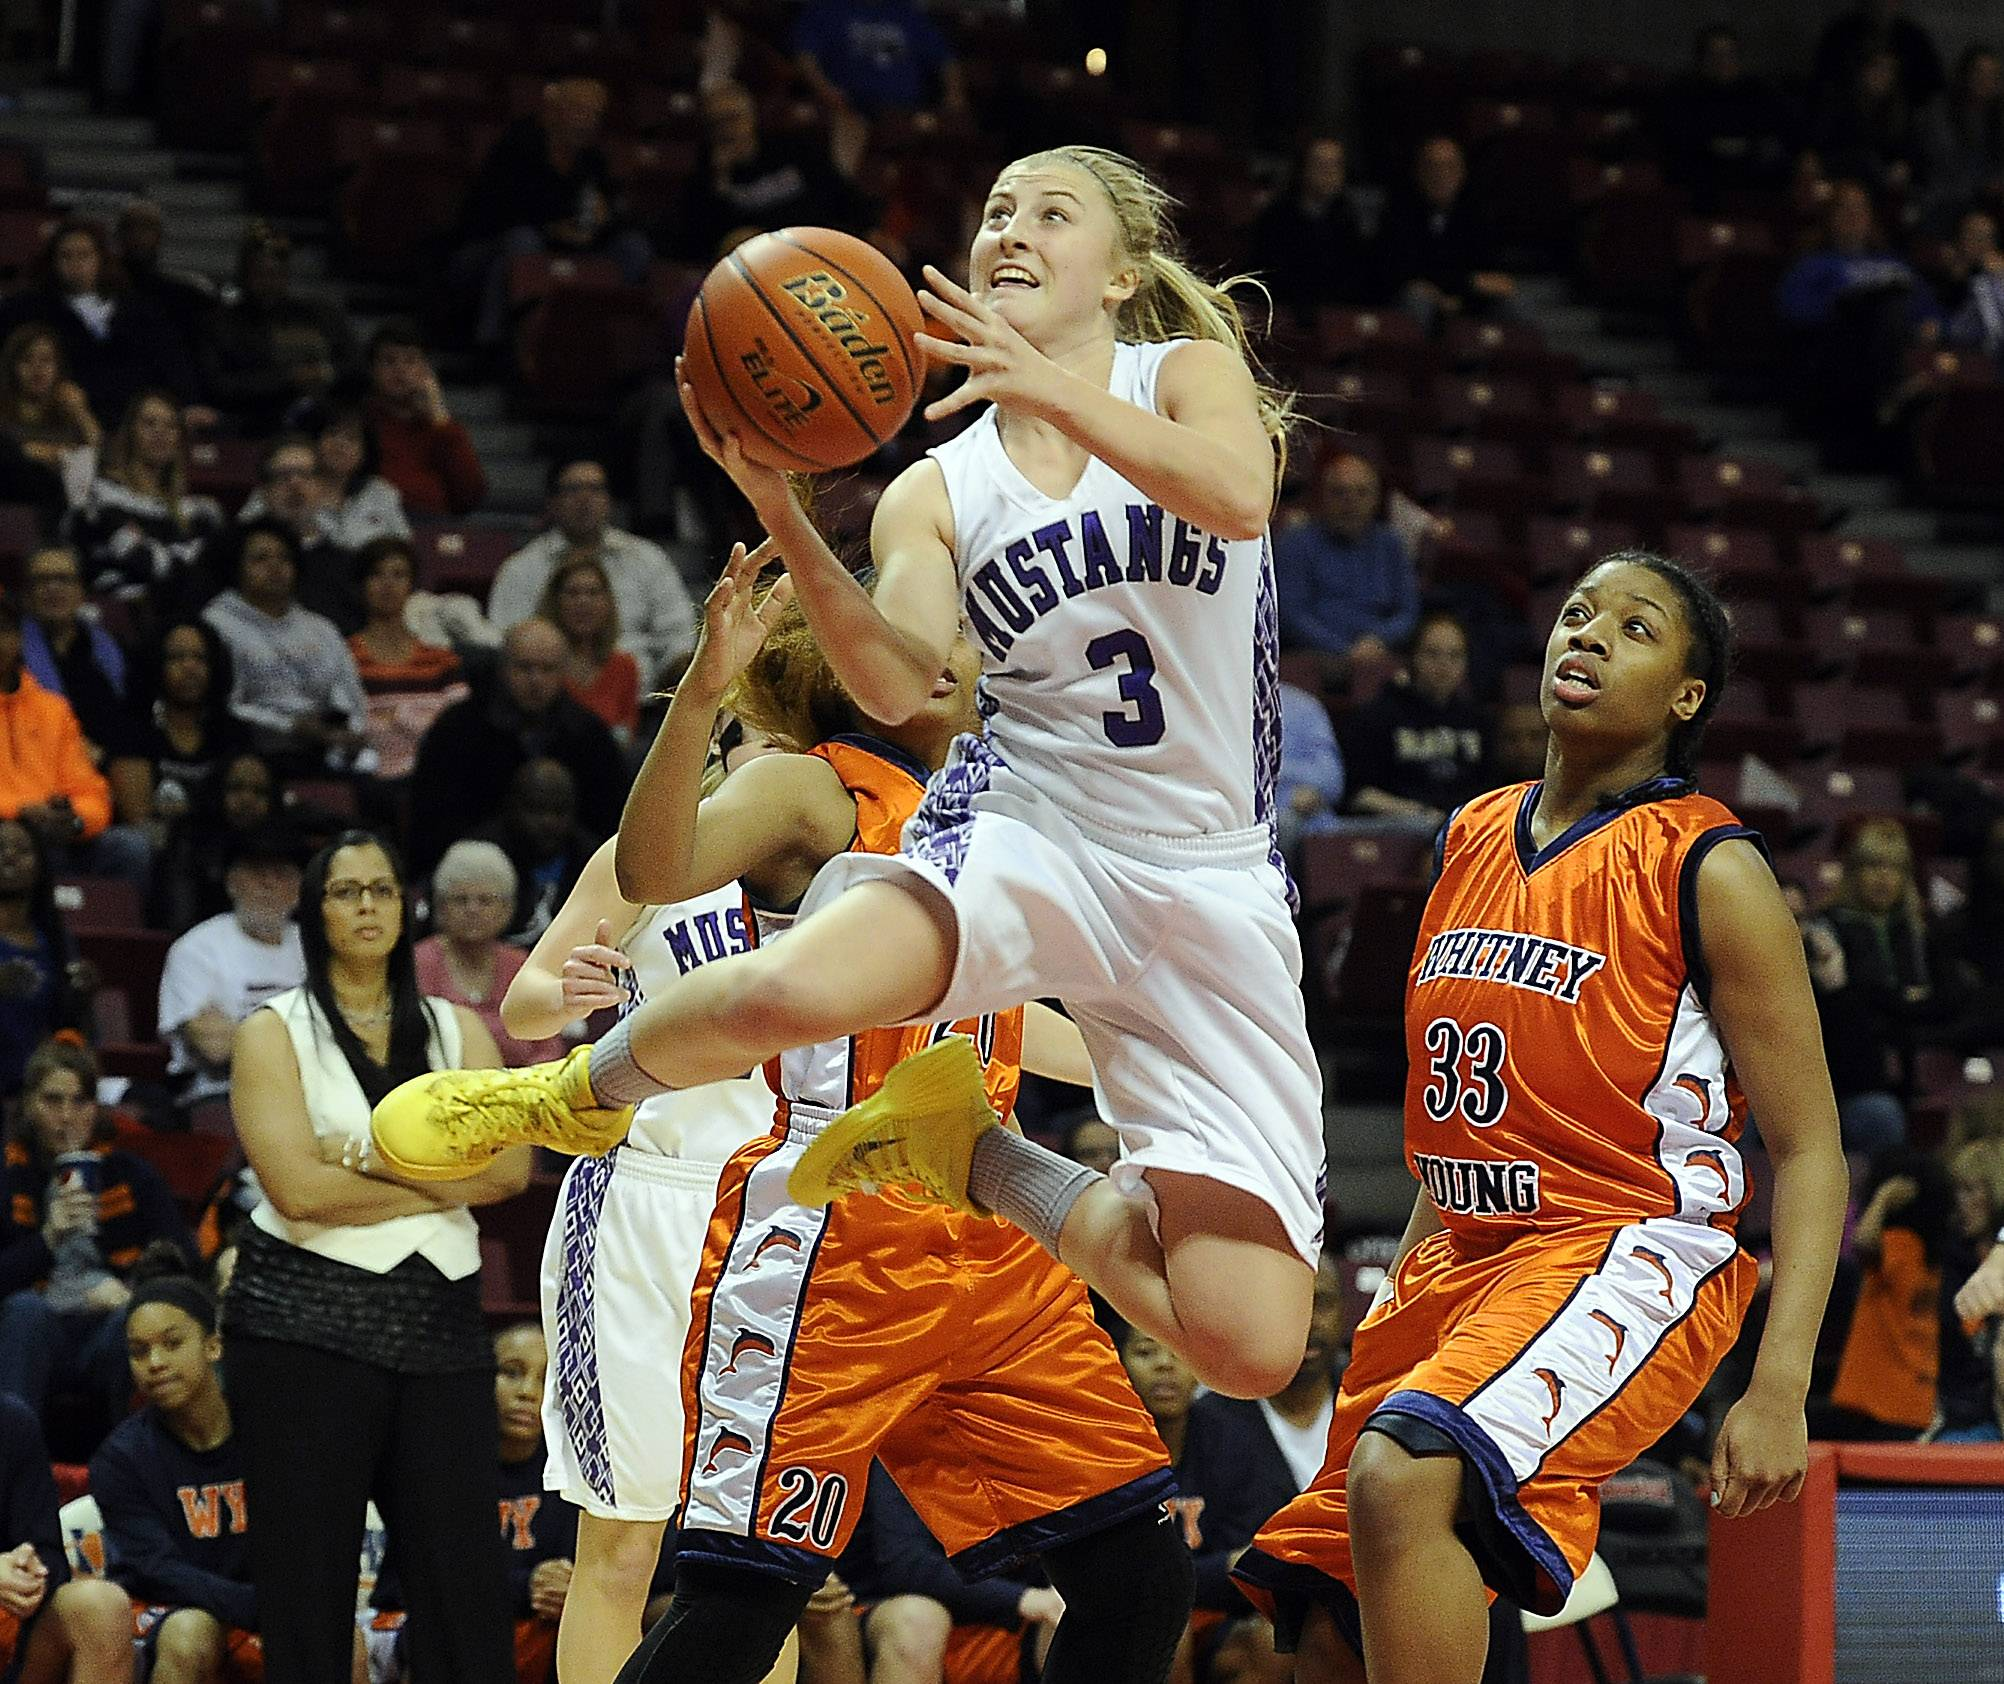 Rolling Meadows senior Jackie Kemph flies through the air past Whitney Young defenders in the first half of the Class 4A state championship game in Normal on Saturday.